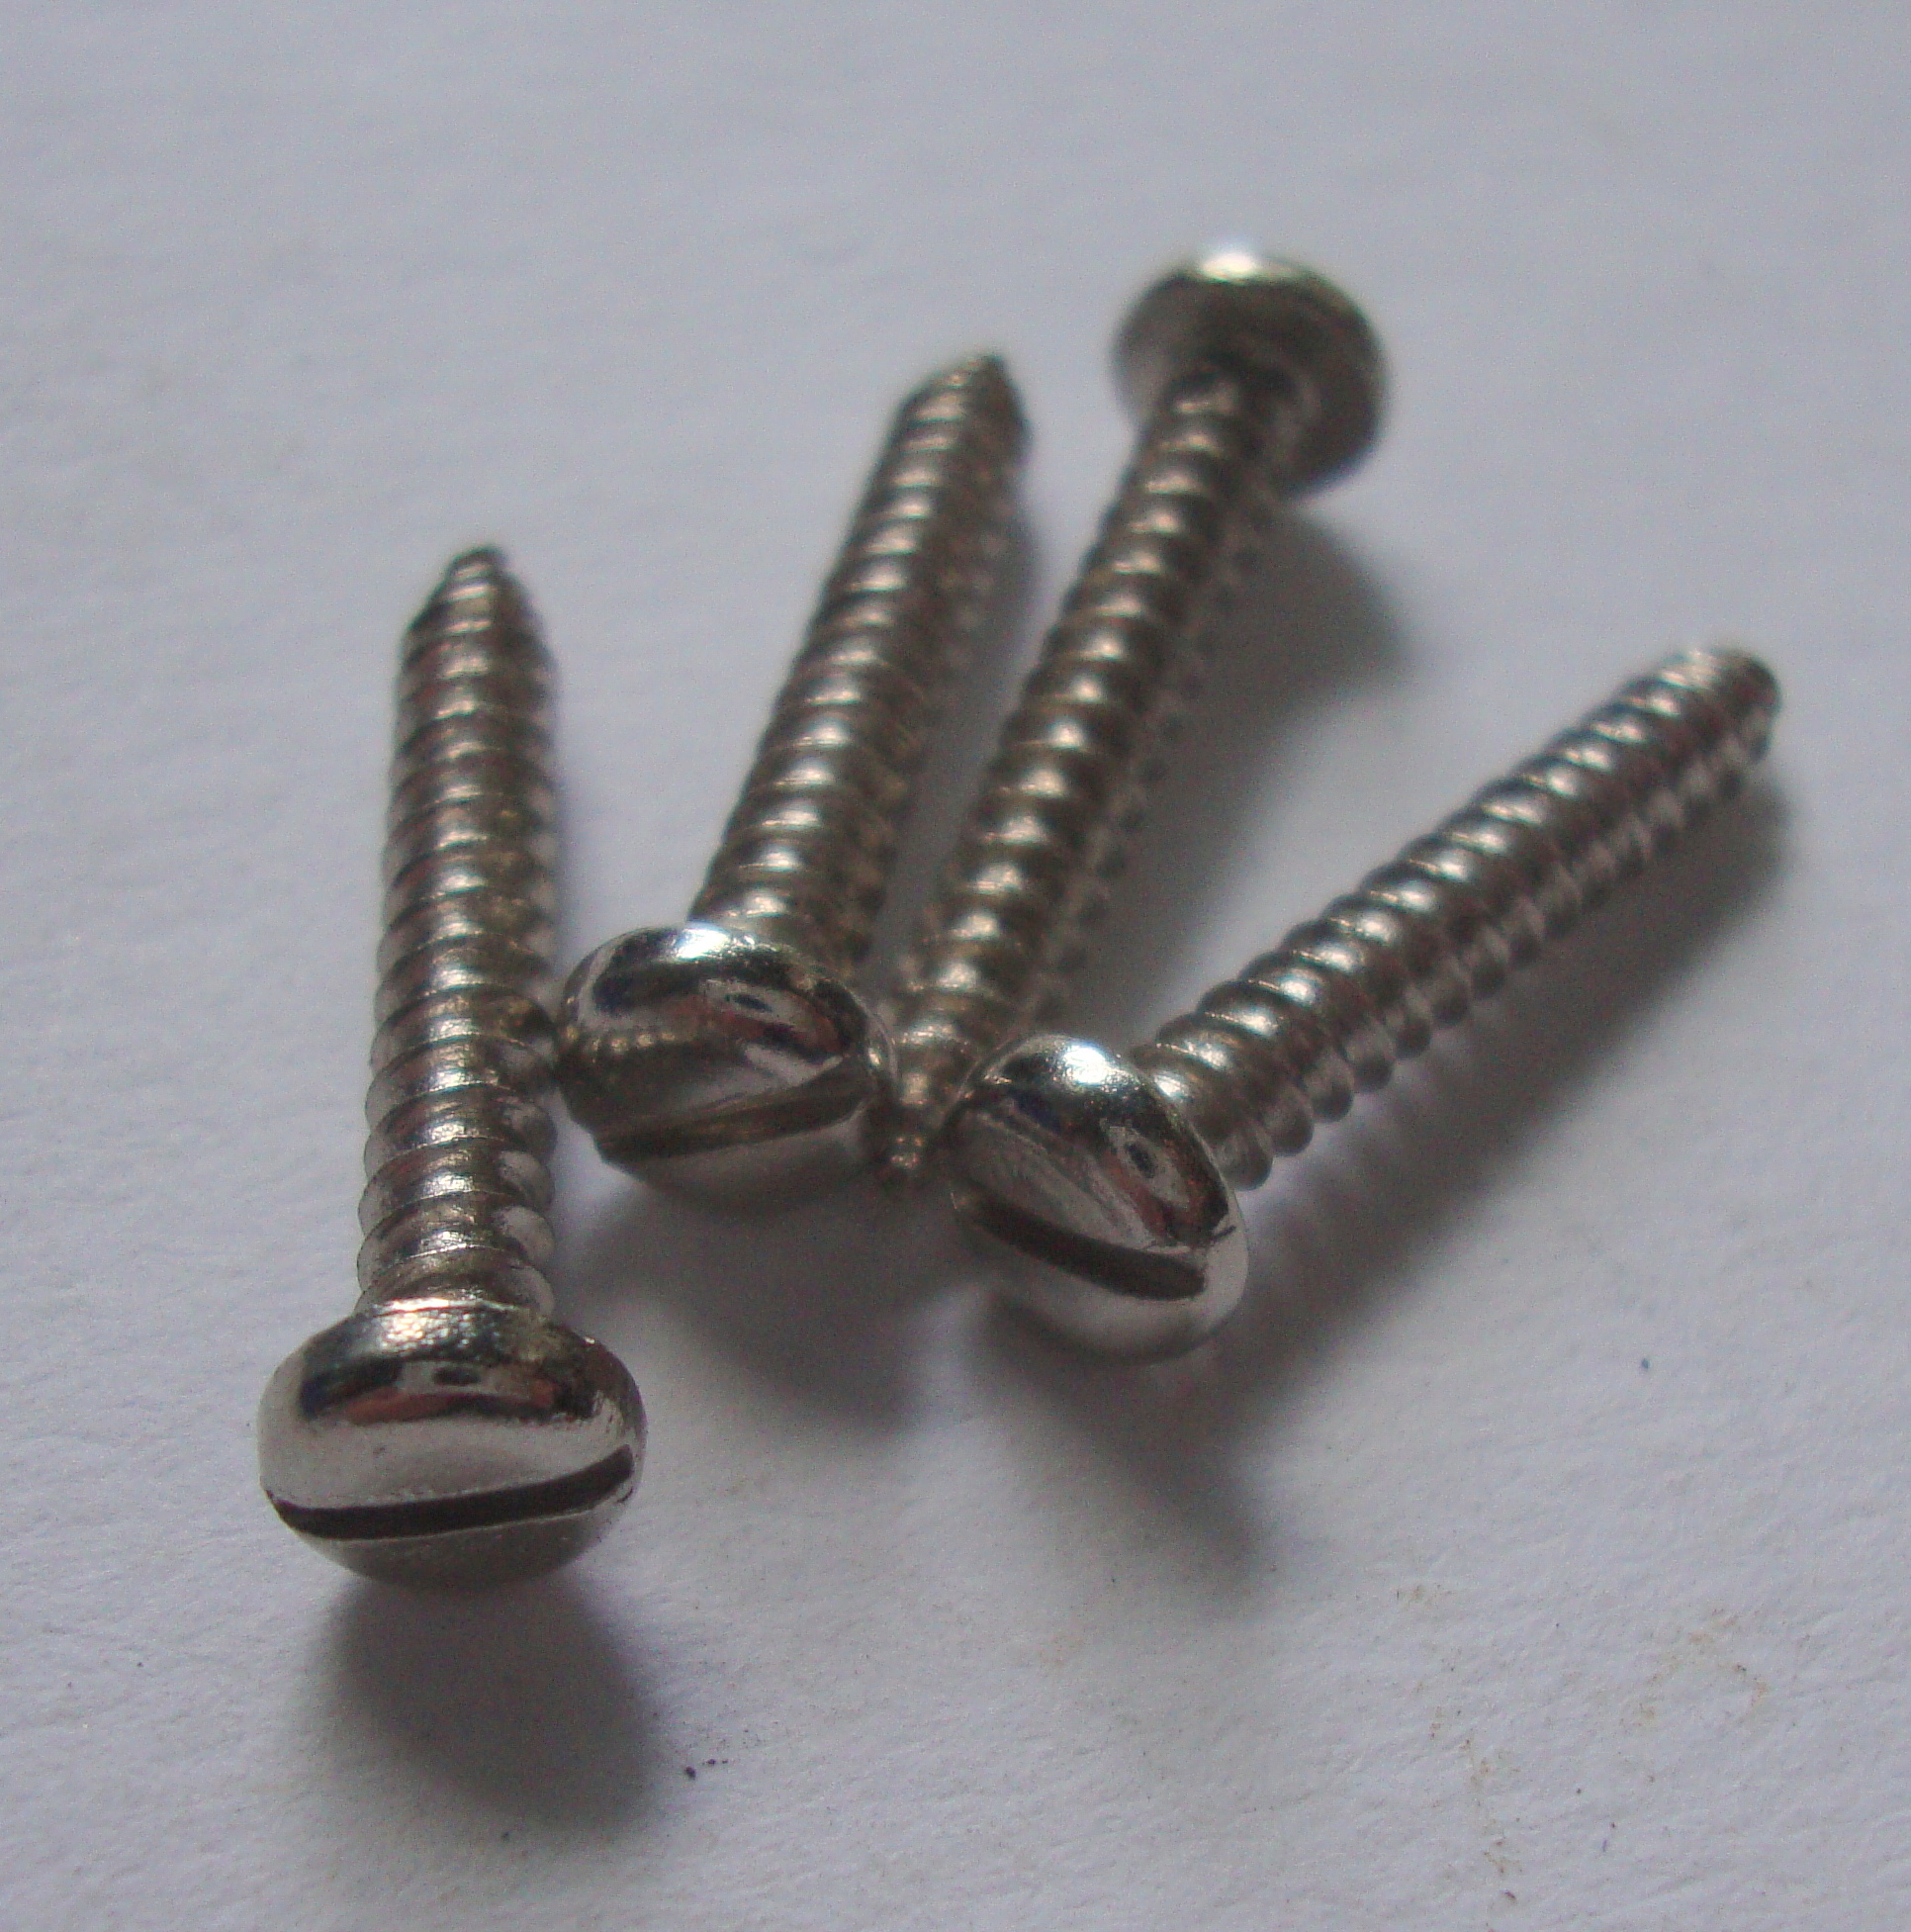 Slotted-head screw kit for horn